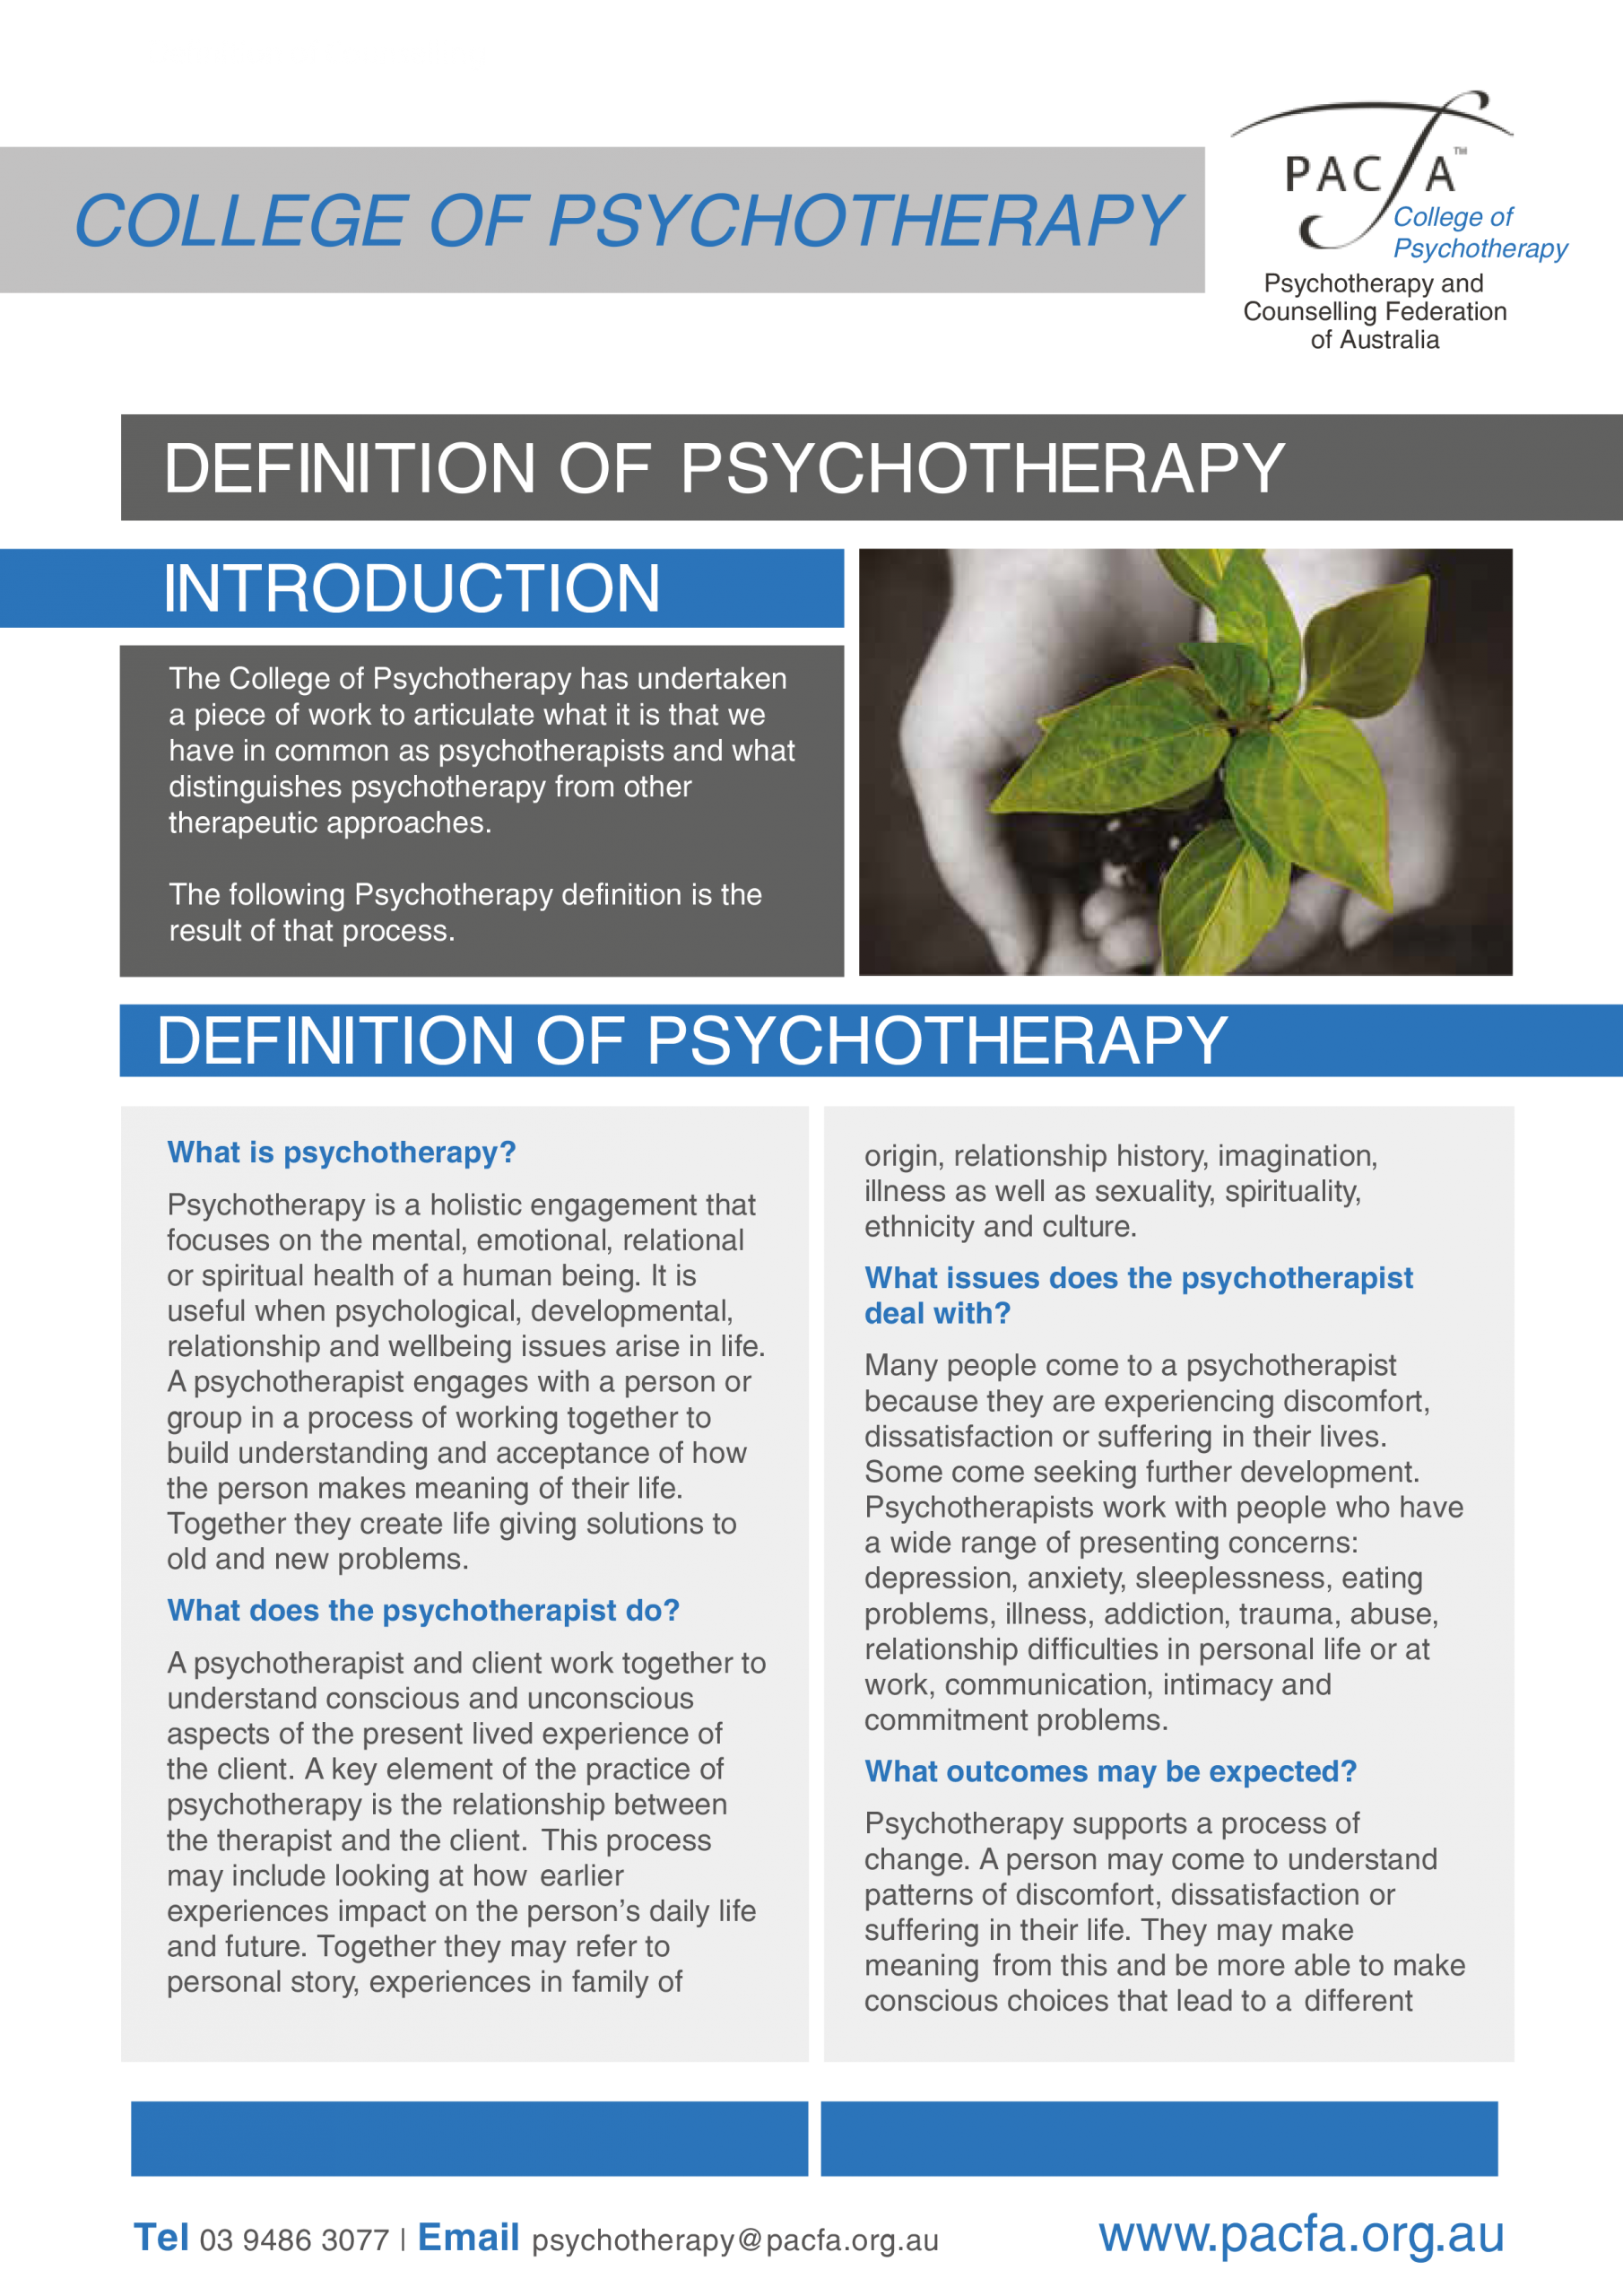 Definition of Psychotherapy